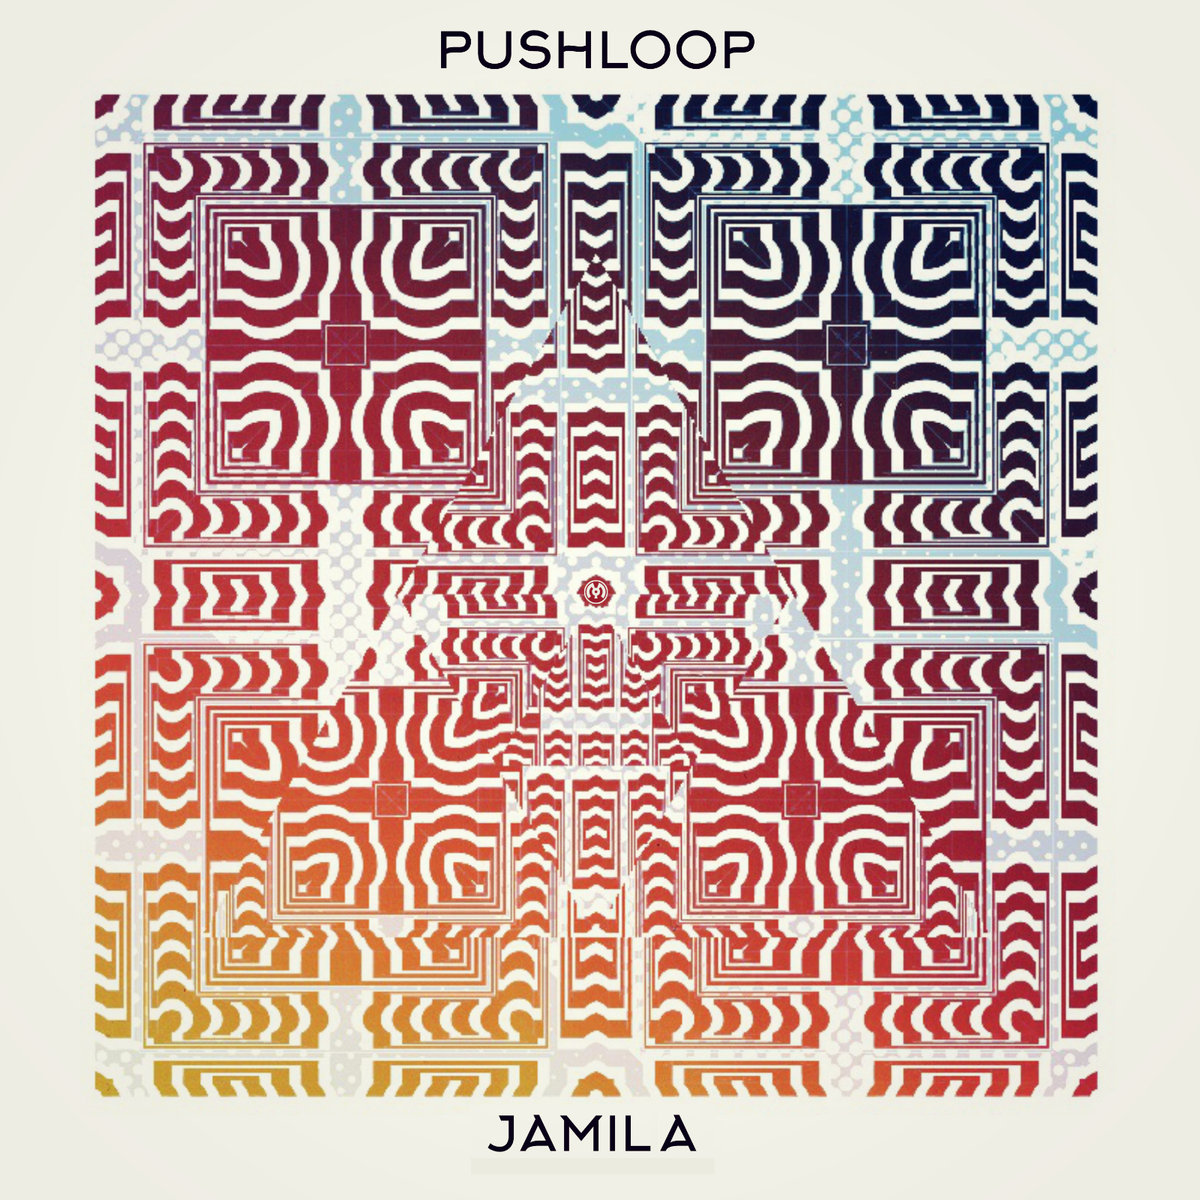 Pushloop - Jamila (The Widdler Remix) @ 'Jamila' album (electronic, dubstep)